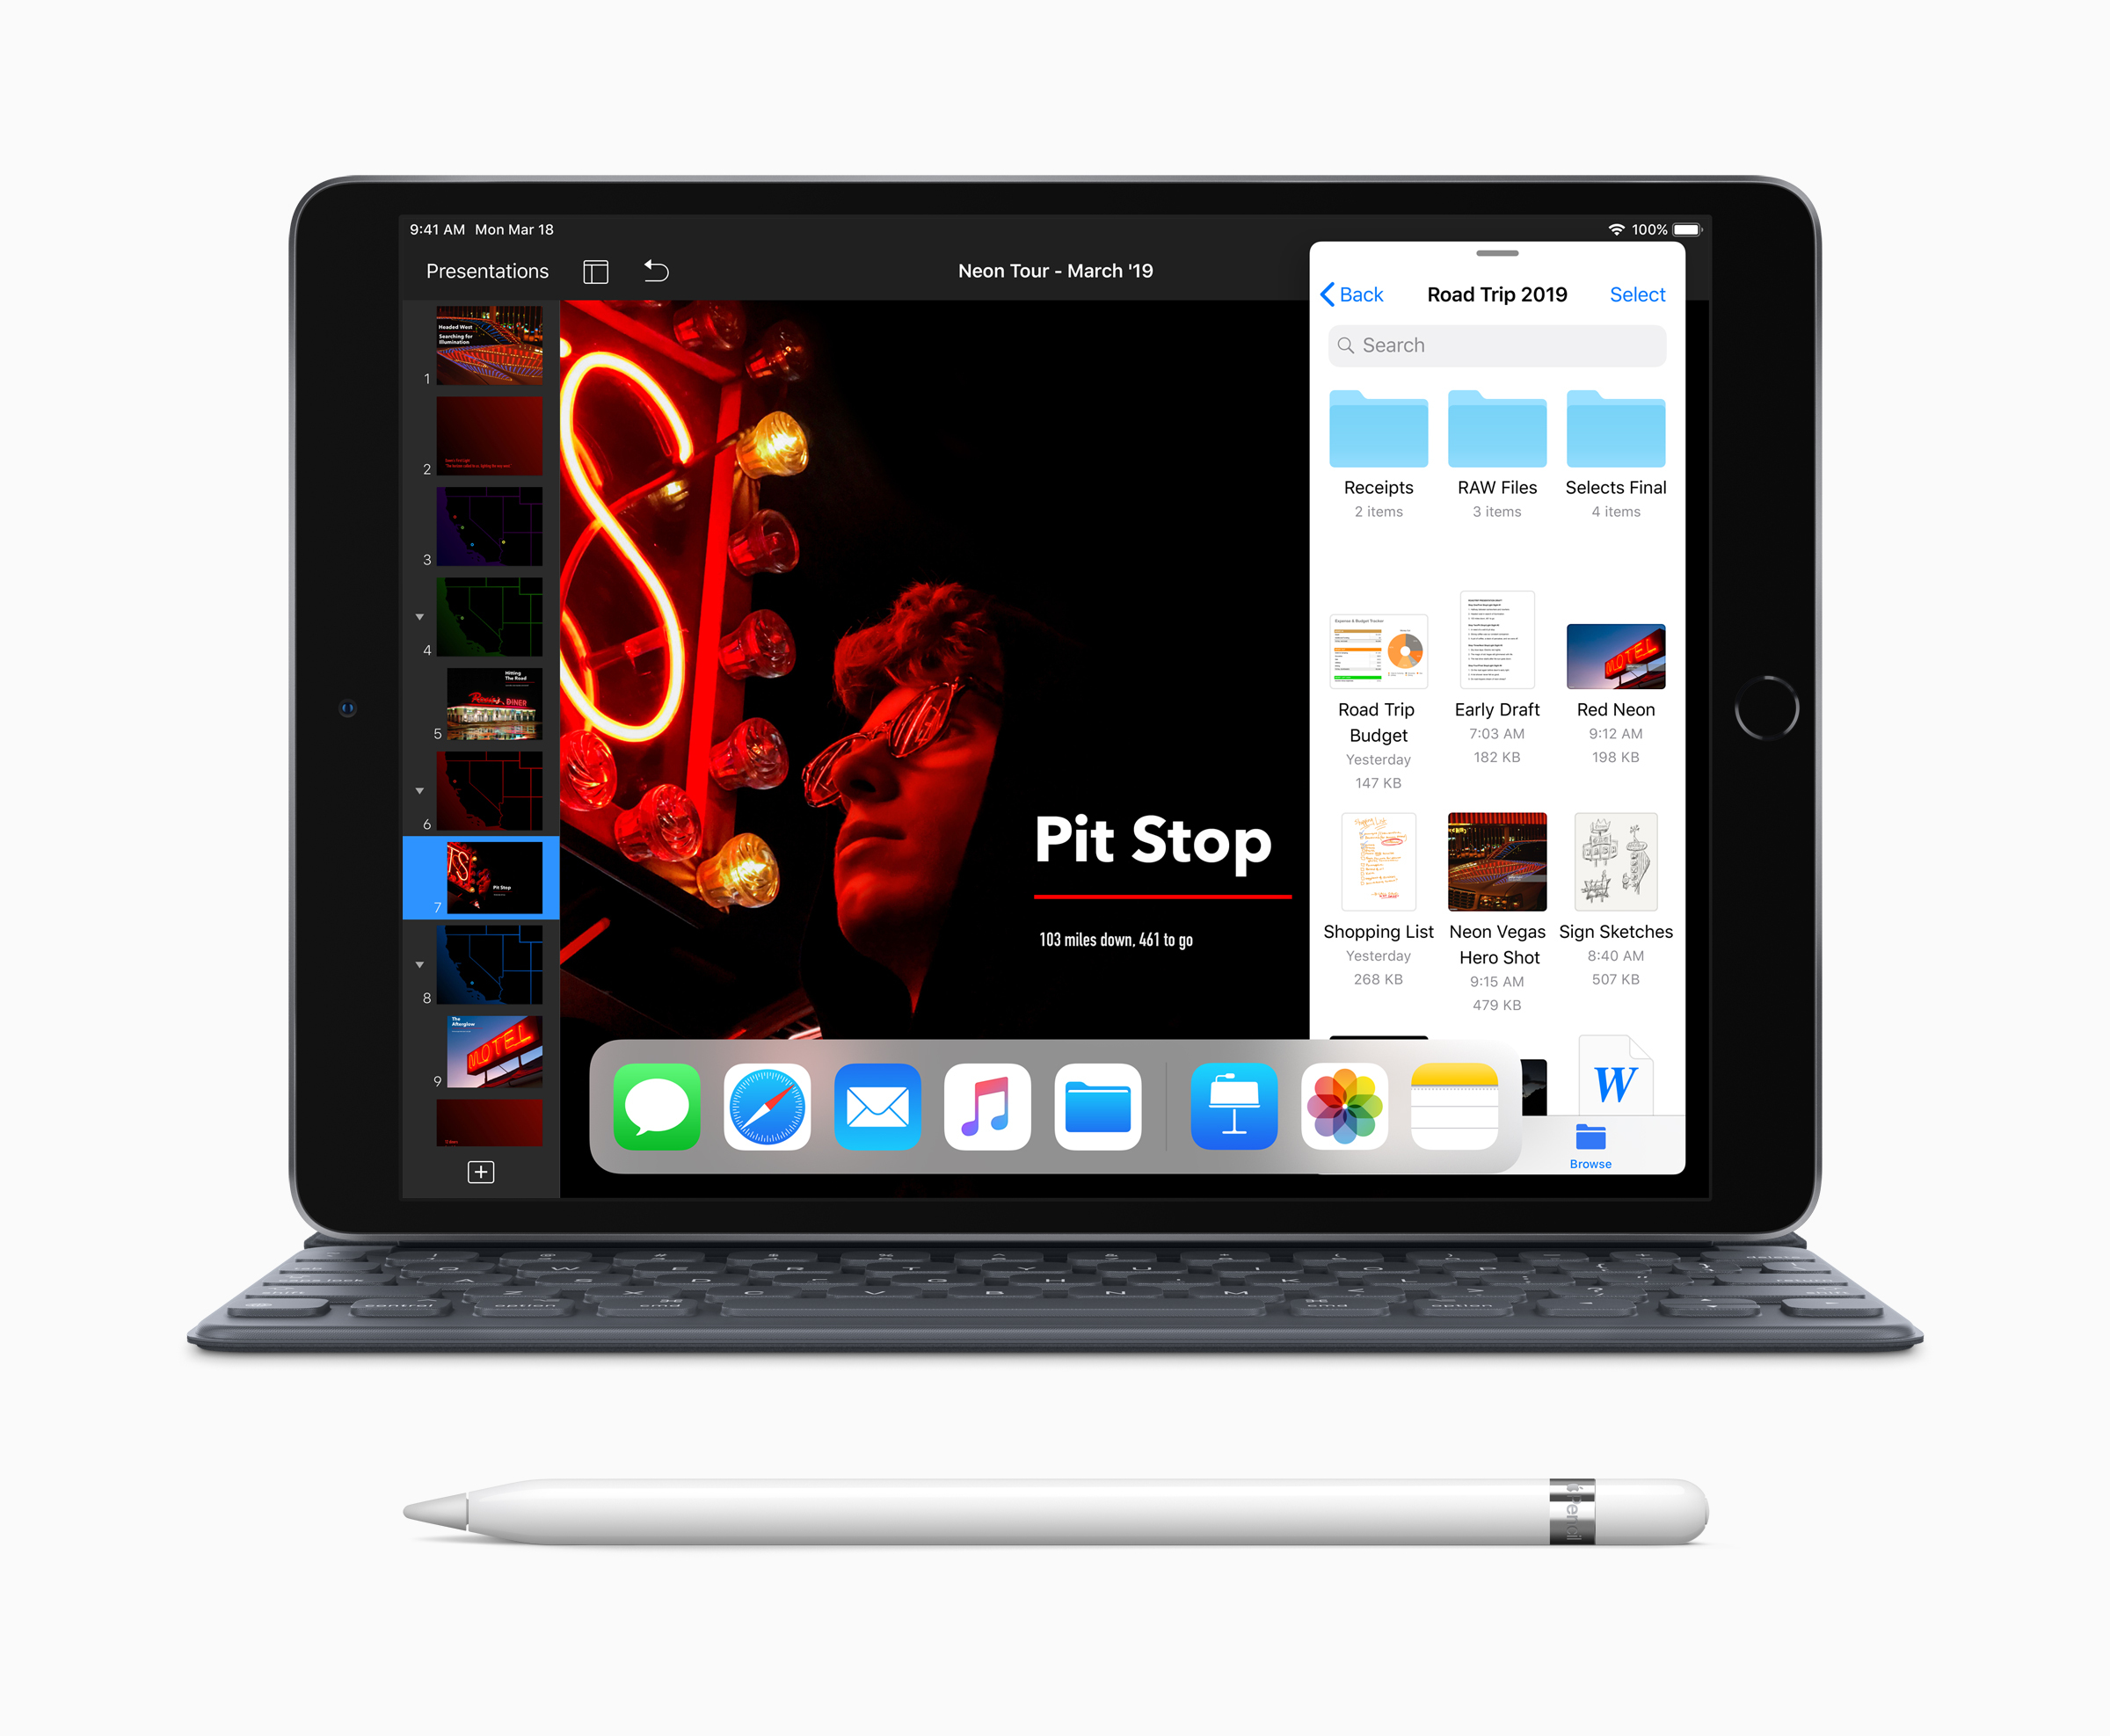 New-iPad-Air-with-Smart-Keyboard-Apple-Pencil-03192019